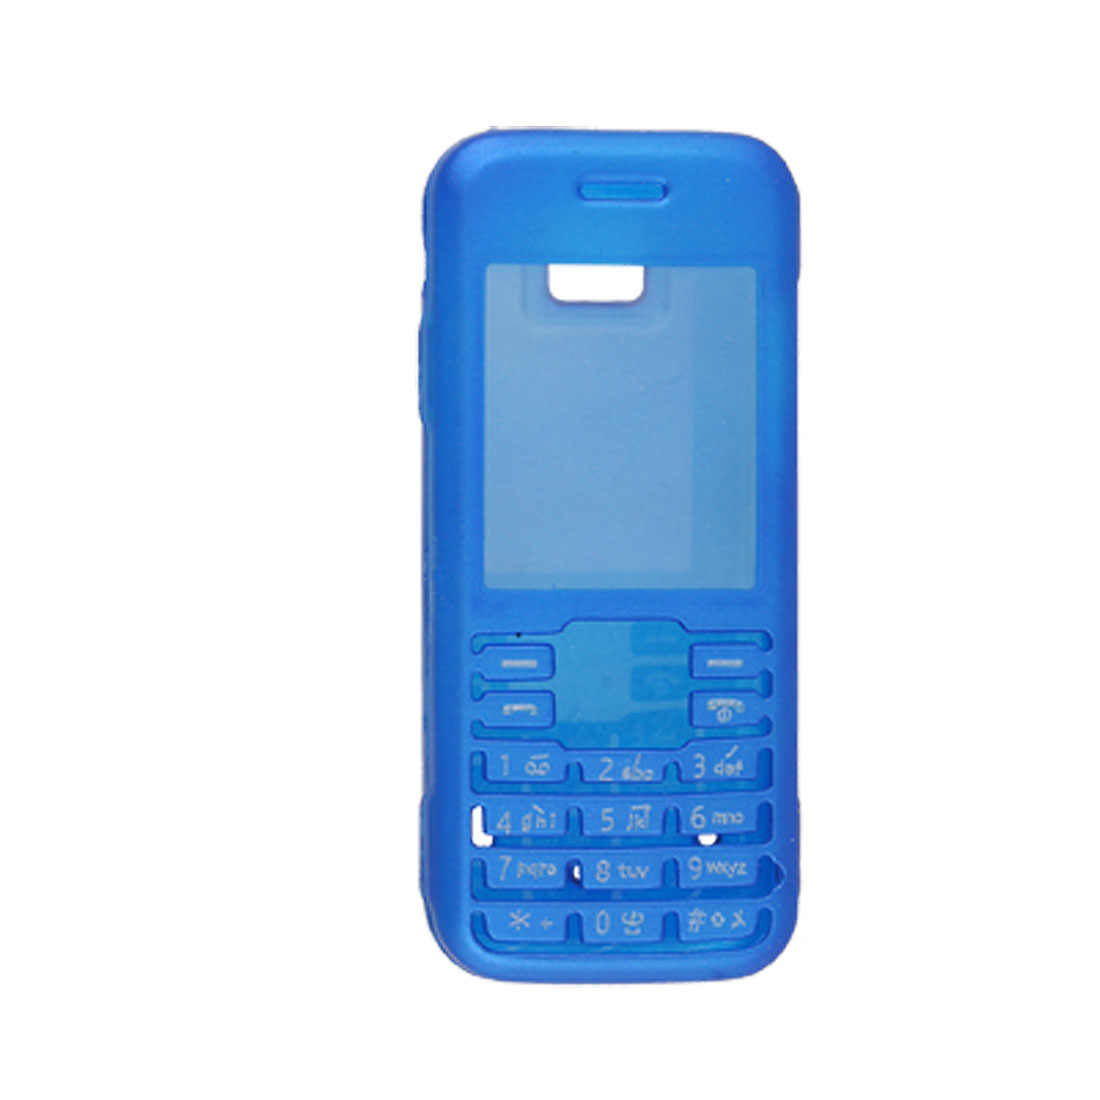 Protective Two Parts Blue Hard Plastic Case for Nokia 7310S